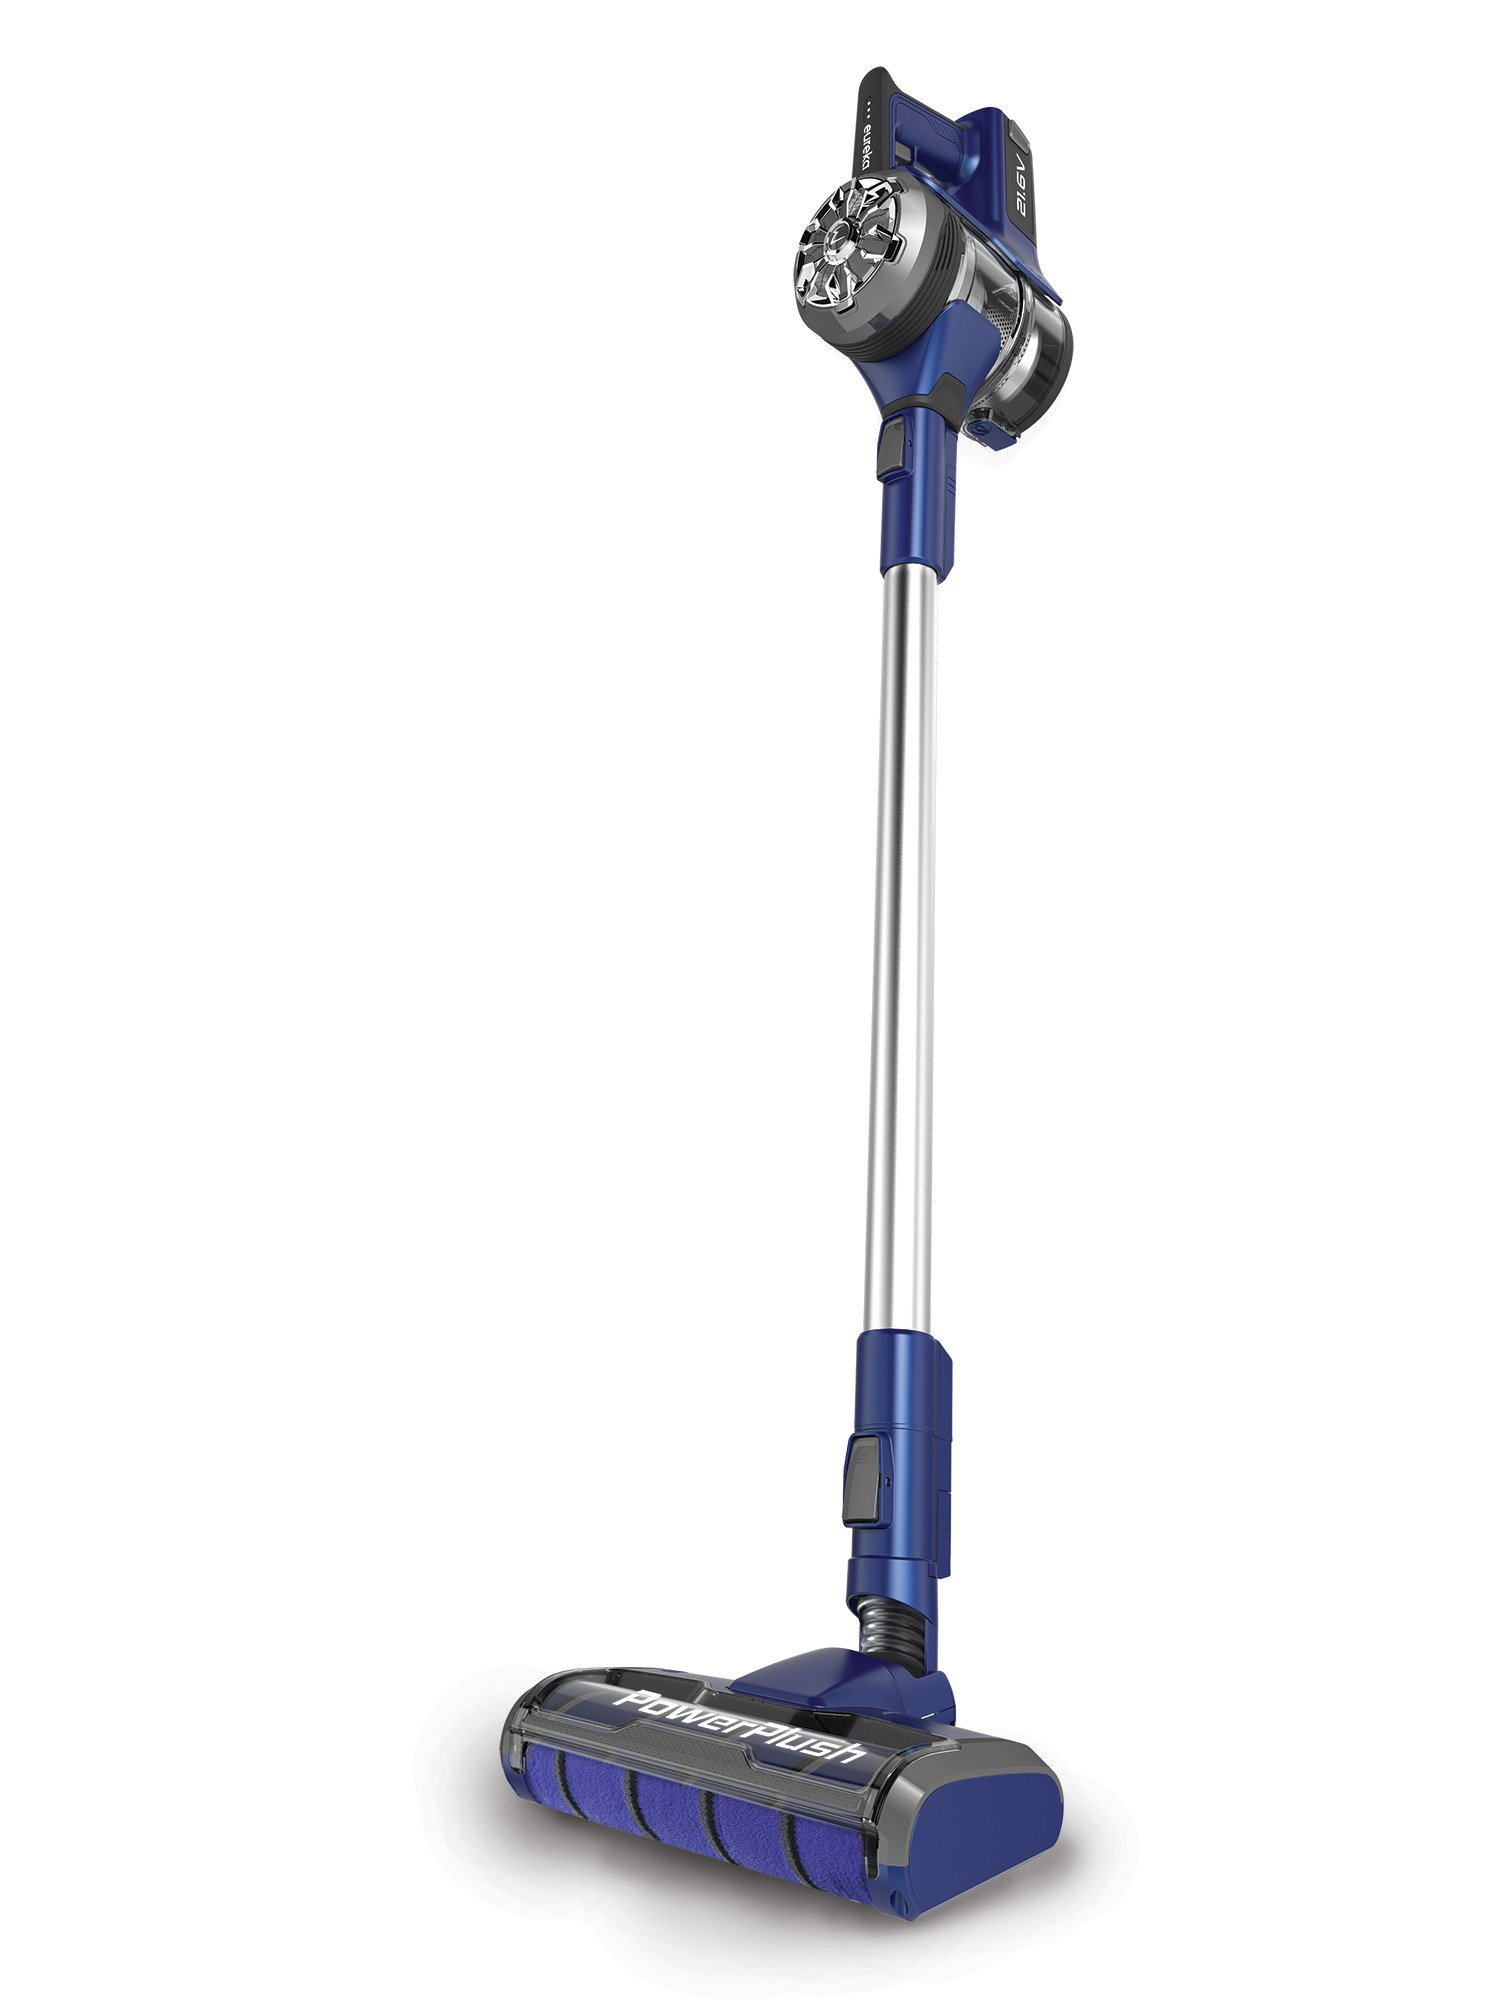 Eureka NEC122A Power Plush 2-in-1 Stick, Rechargeable Cordless Vacuum Cleaner, Grey on Blue Violet